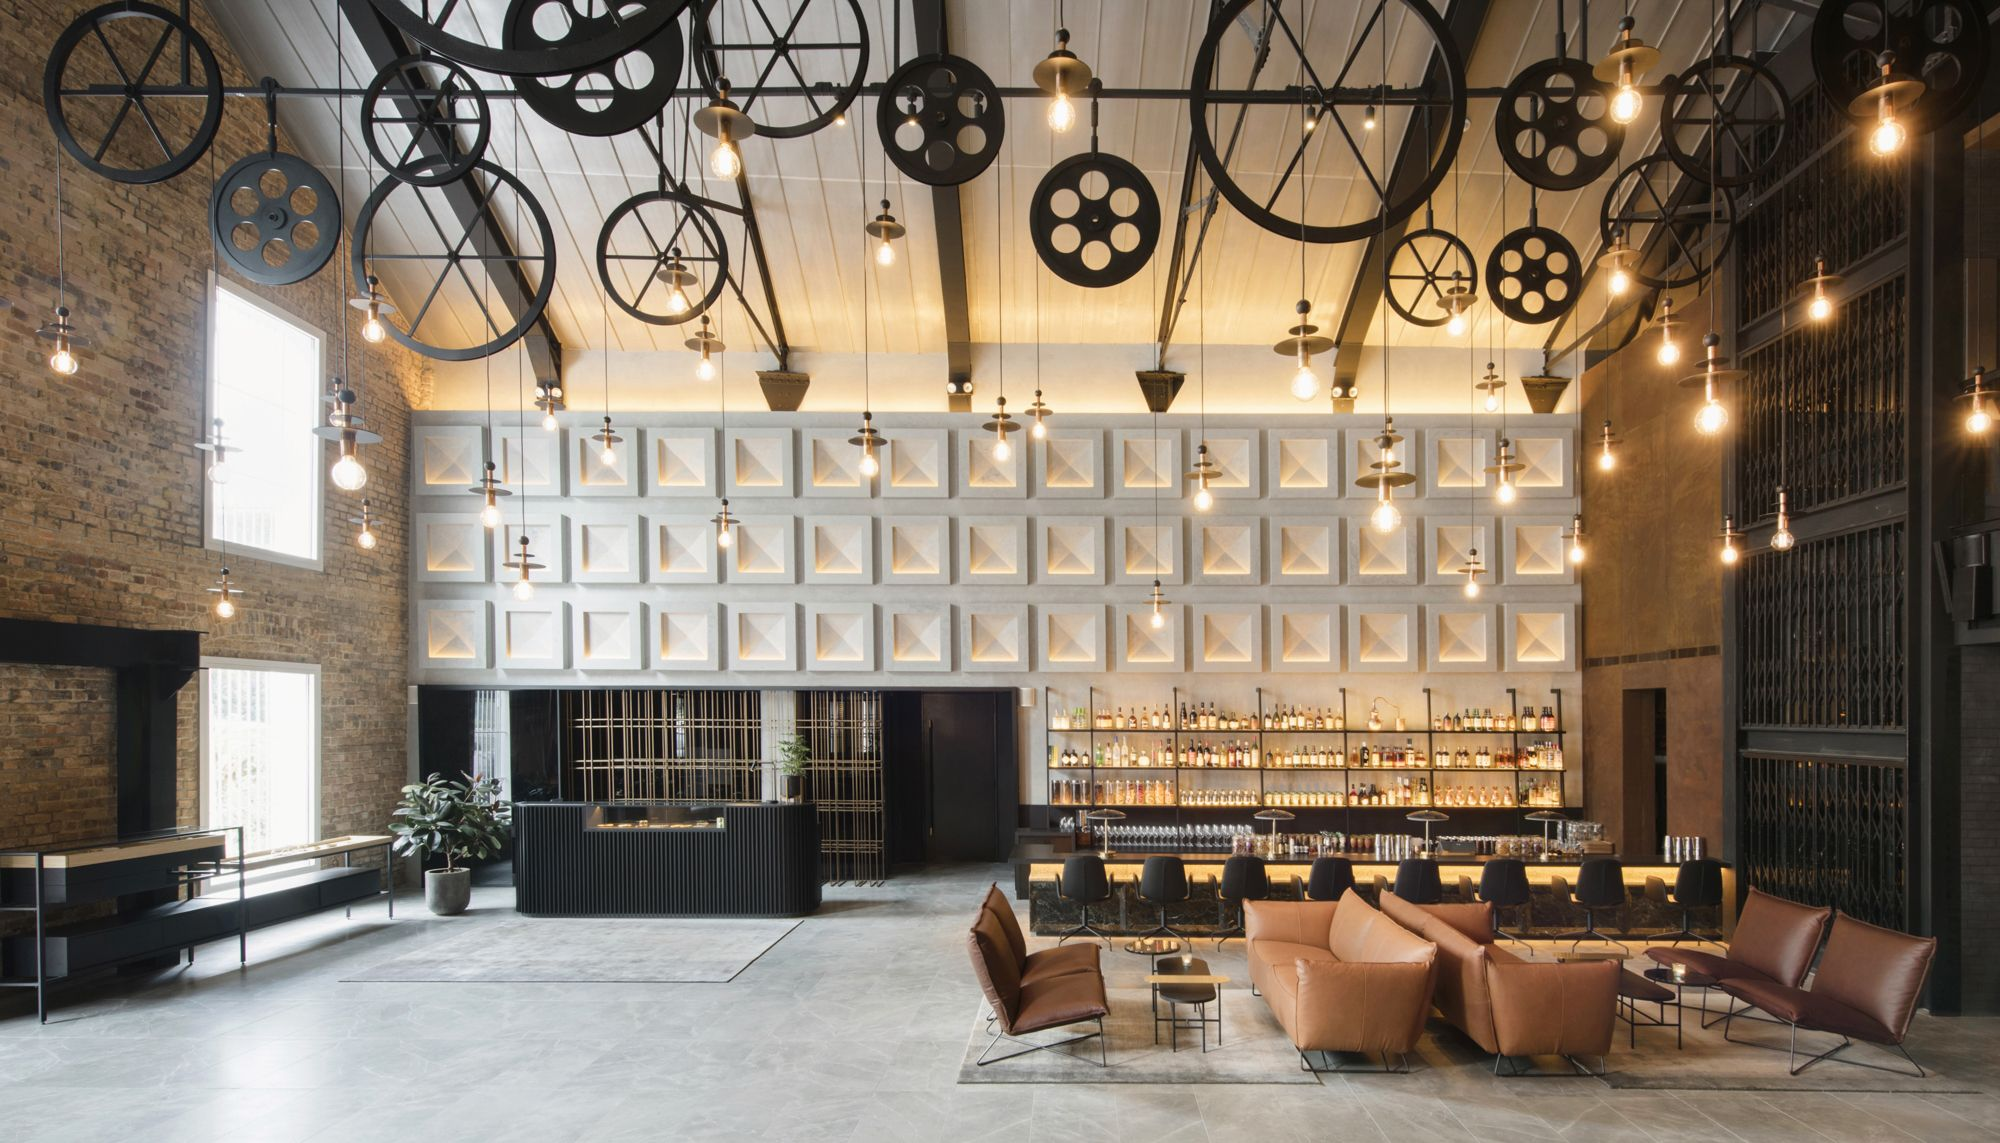 2.5 Hours Away: The Warehouse Hotel, Singapore